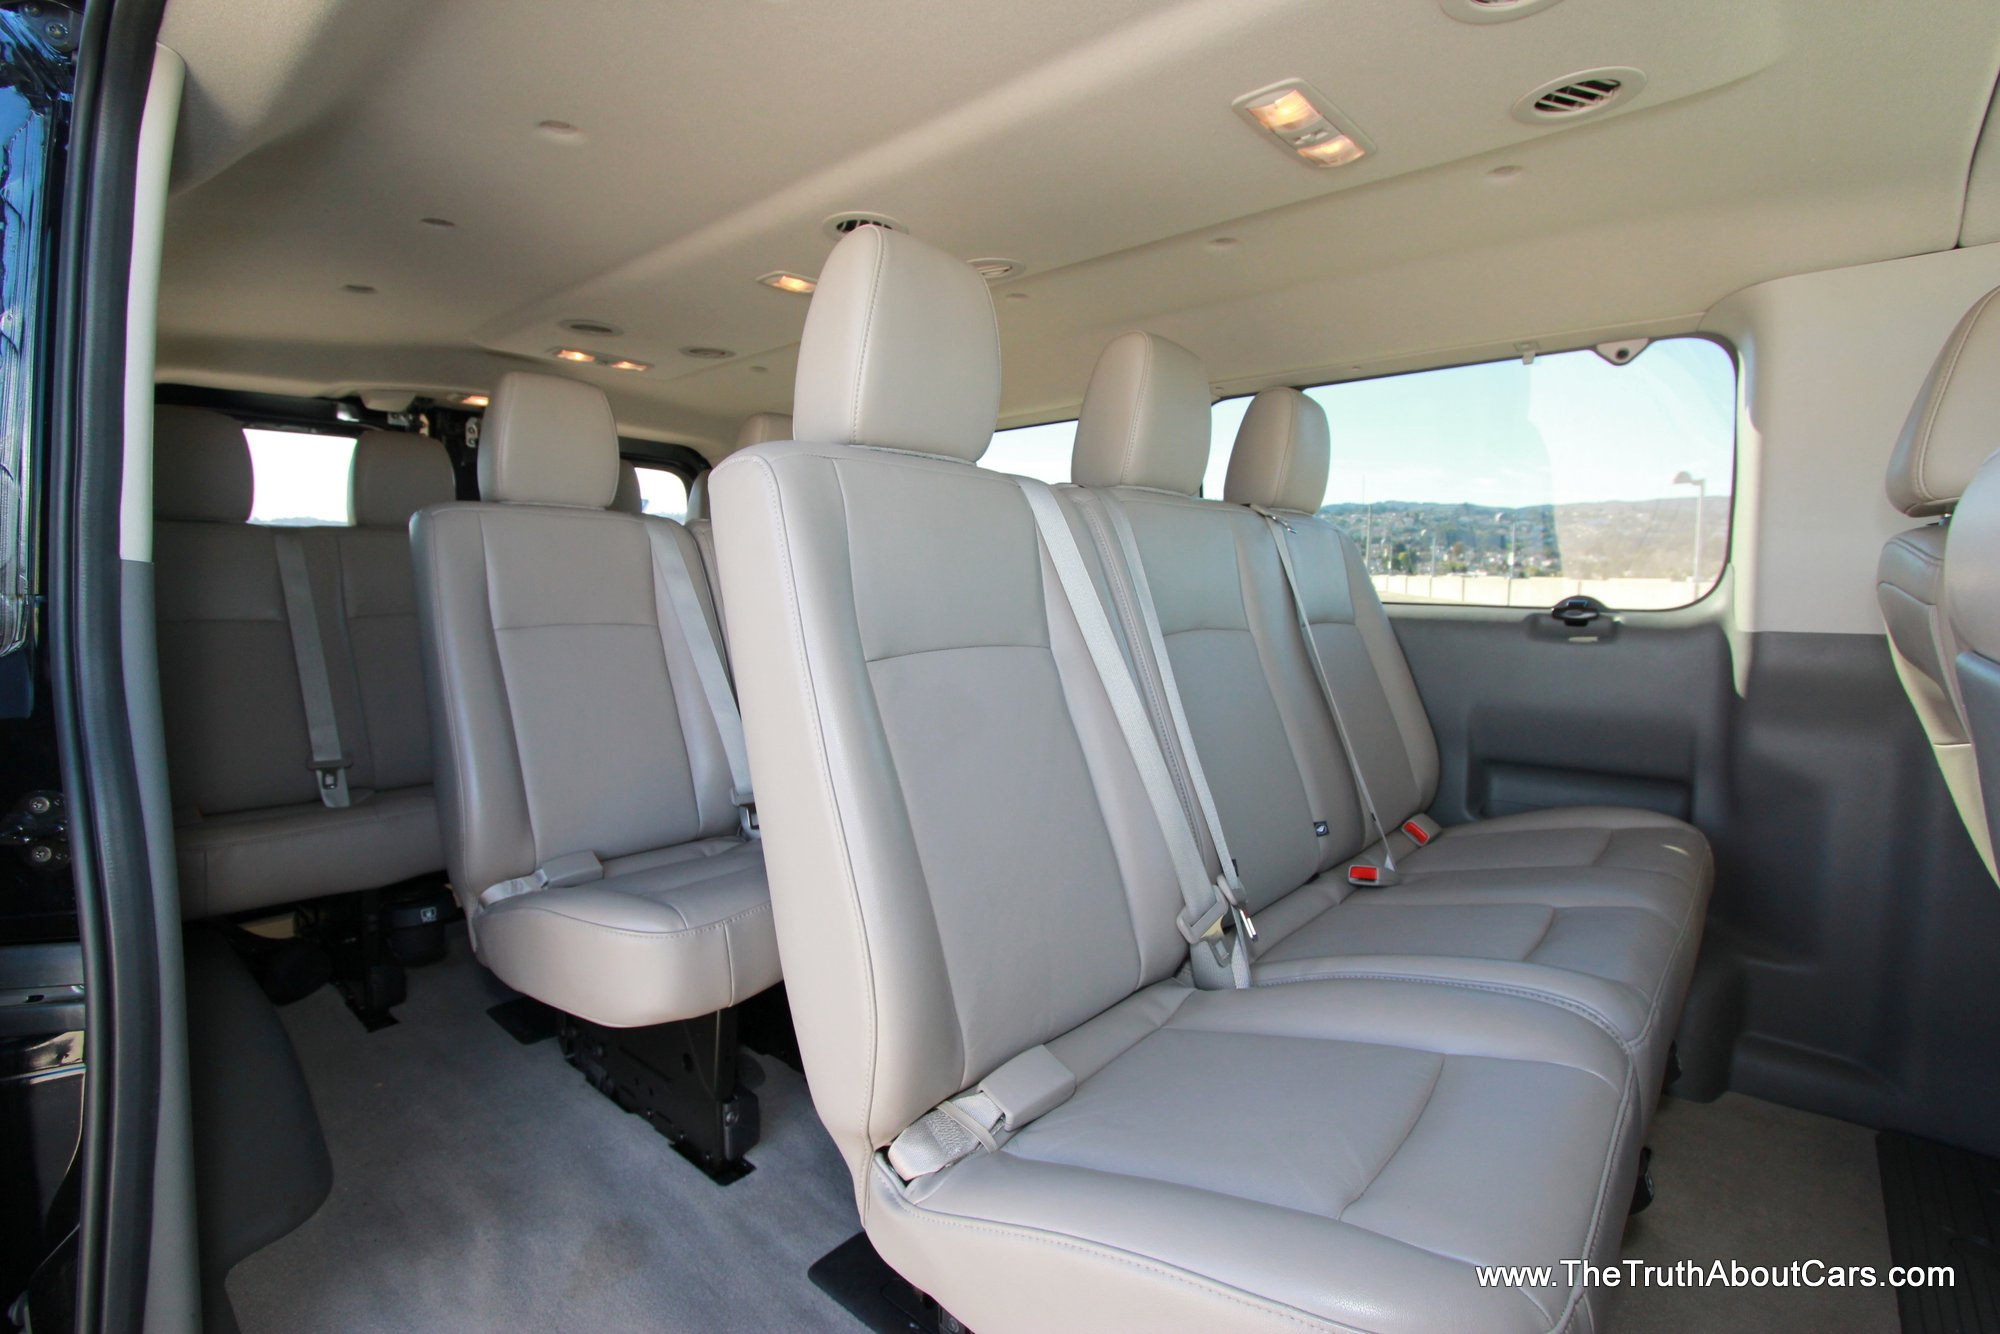 2014 Nissan NV Passenger Information and photos ZombieDrive